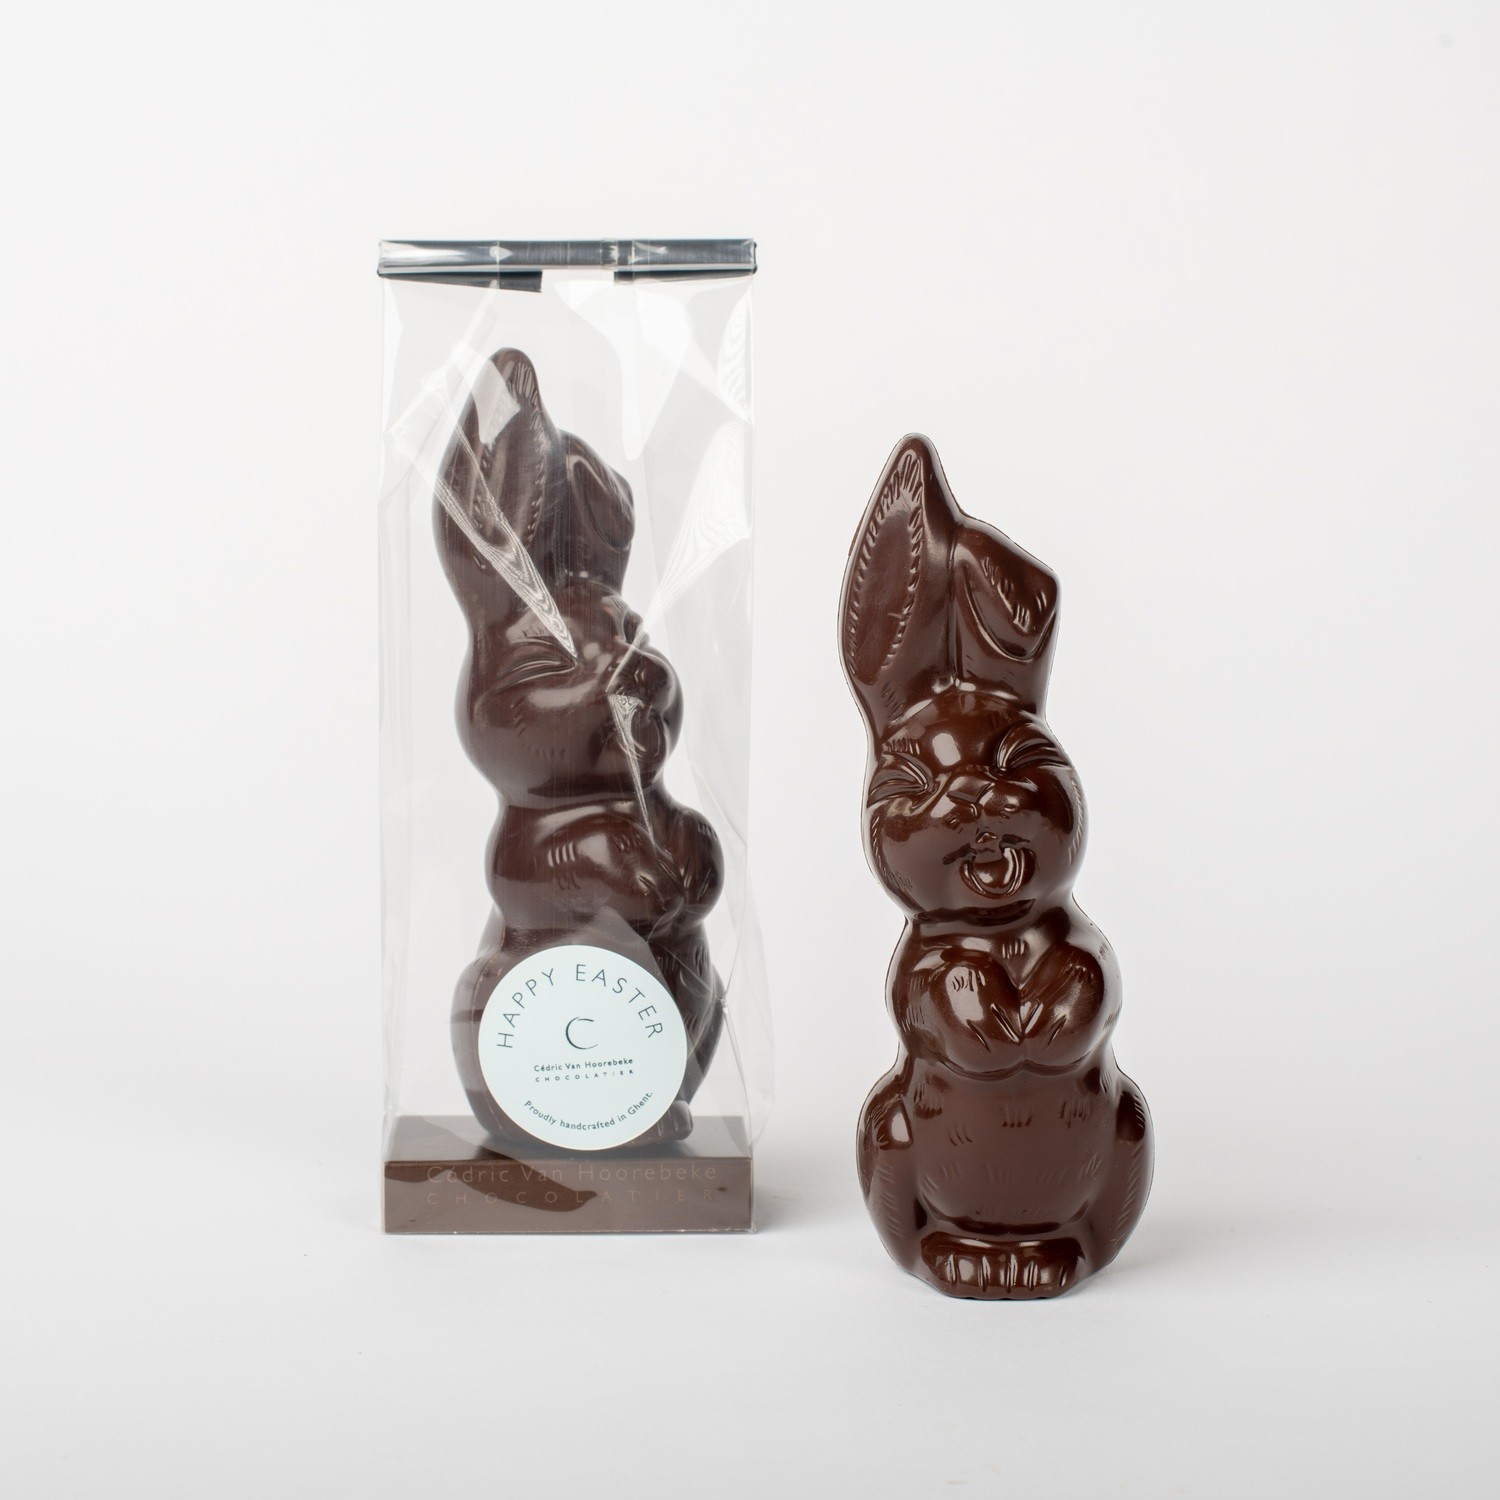 Smiling hare - classic dark chocolate 53%  H 17 cm